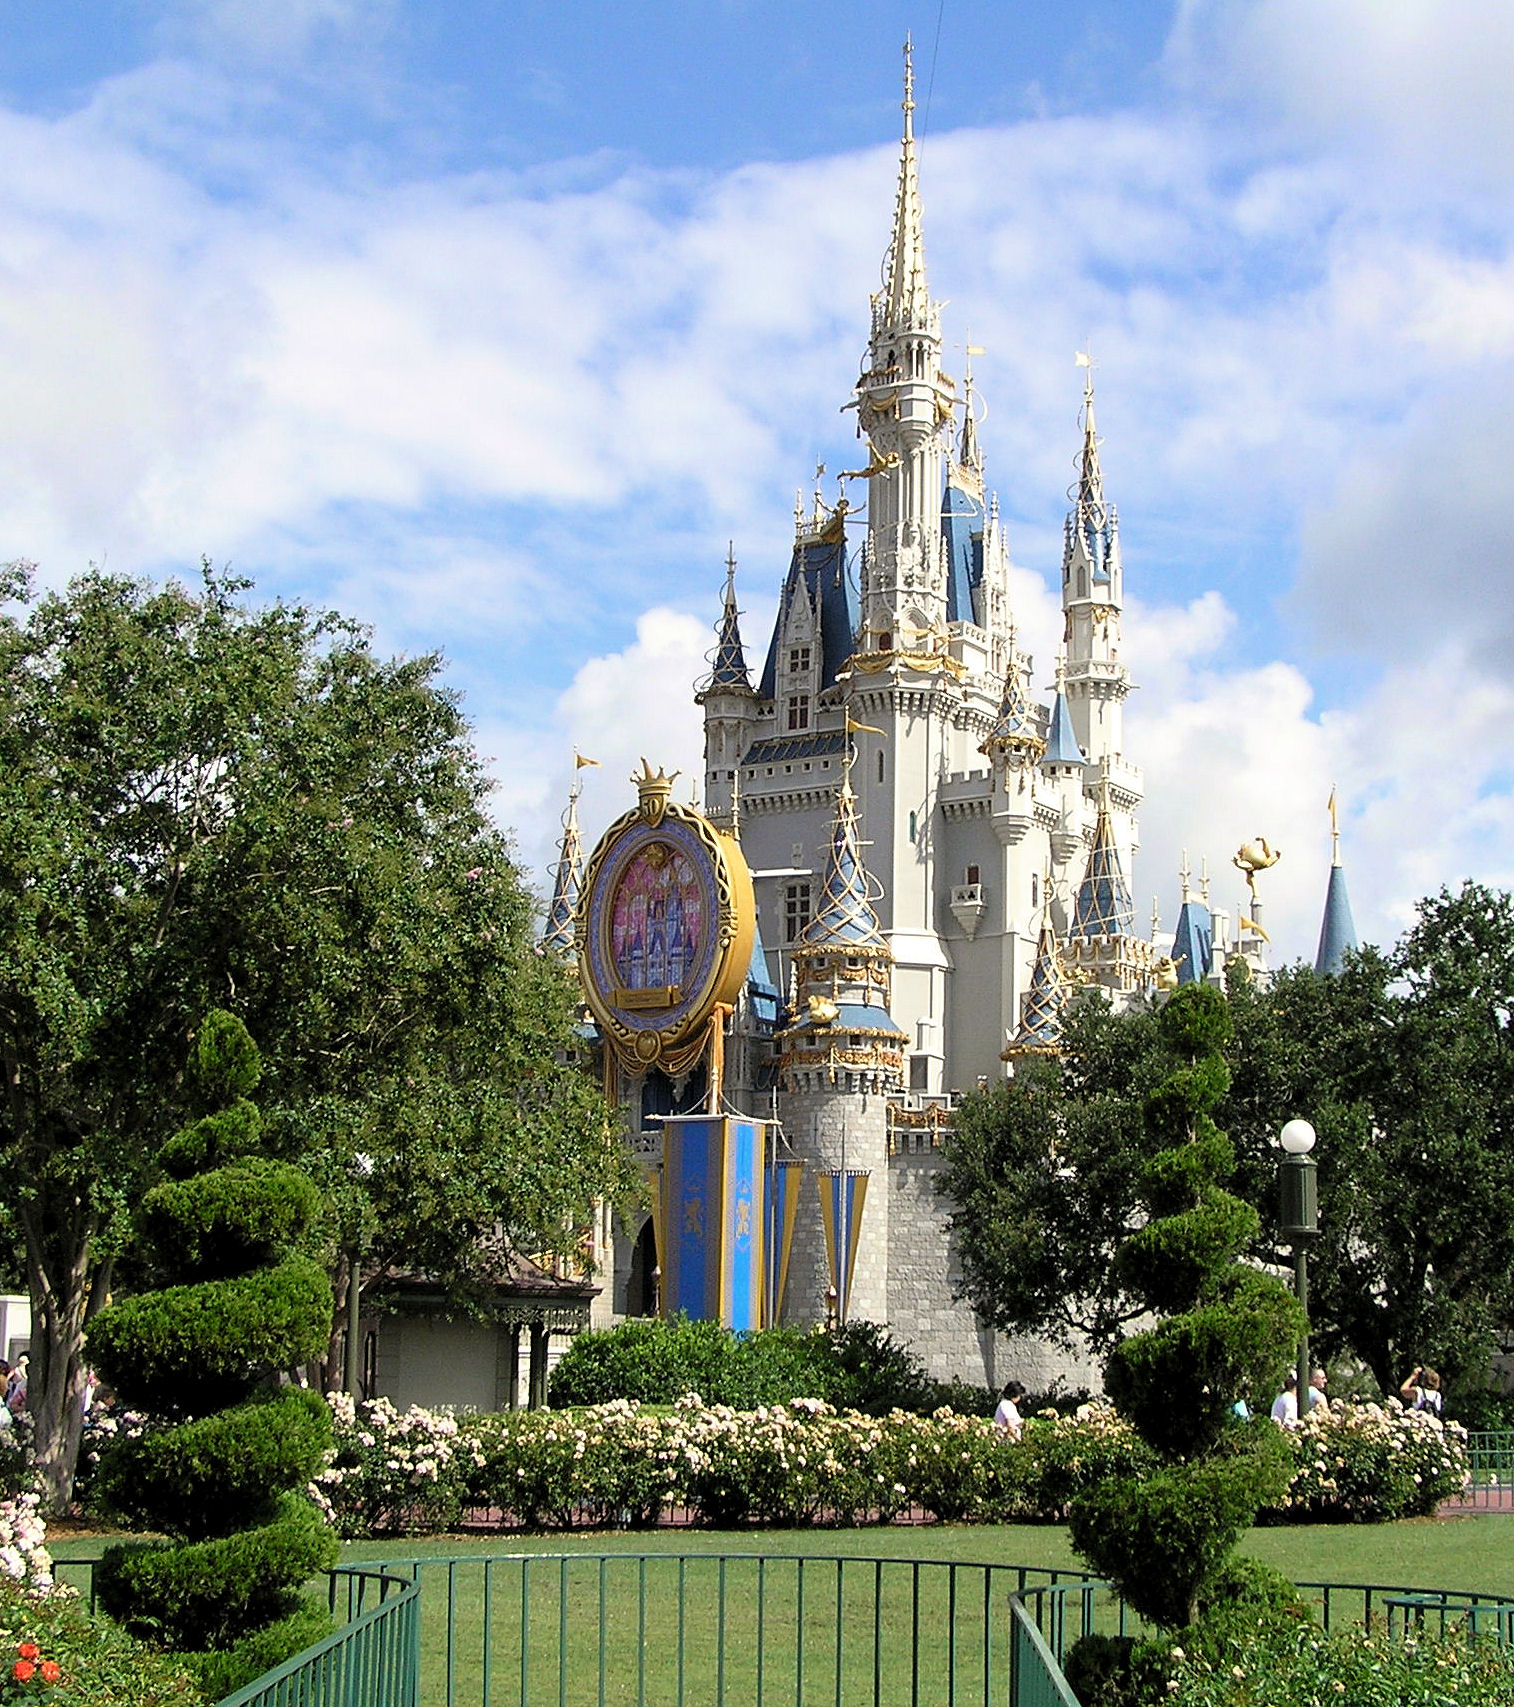 Another shot of Cinderella Castle at Disney World decorated for The Happiest Celebration on Earth.